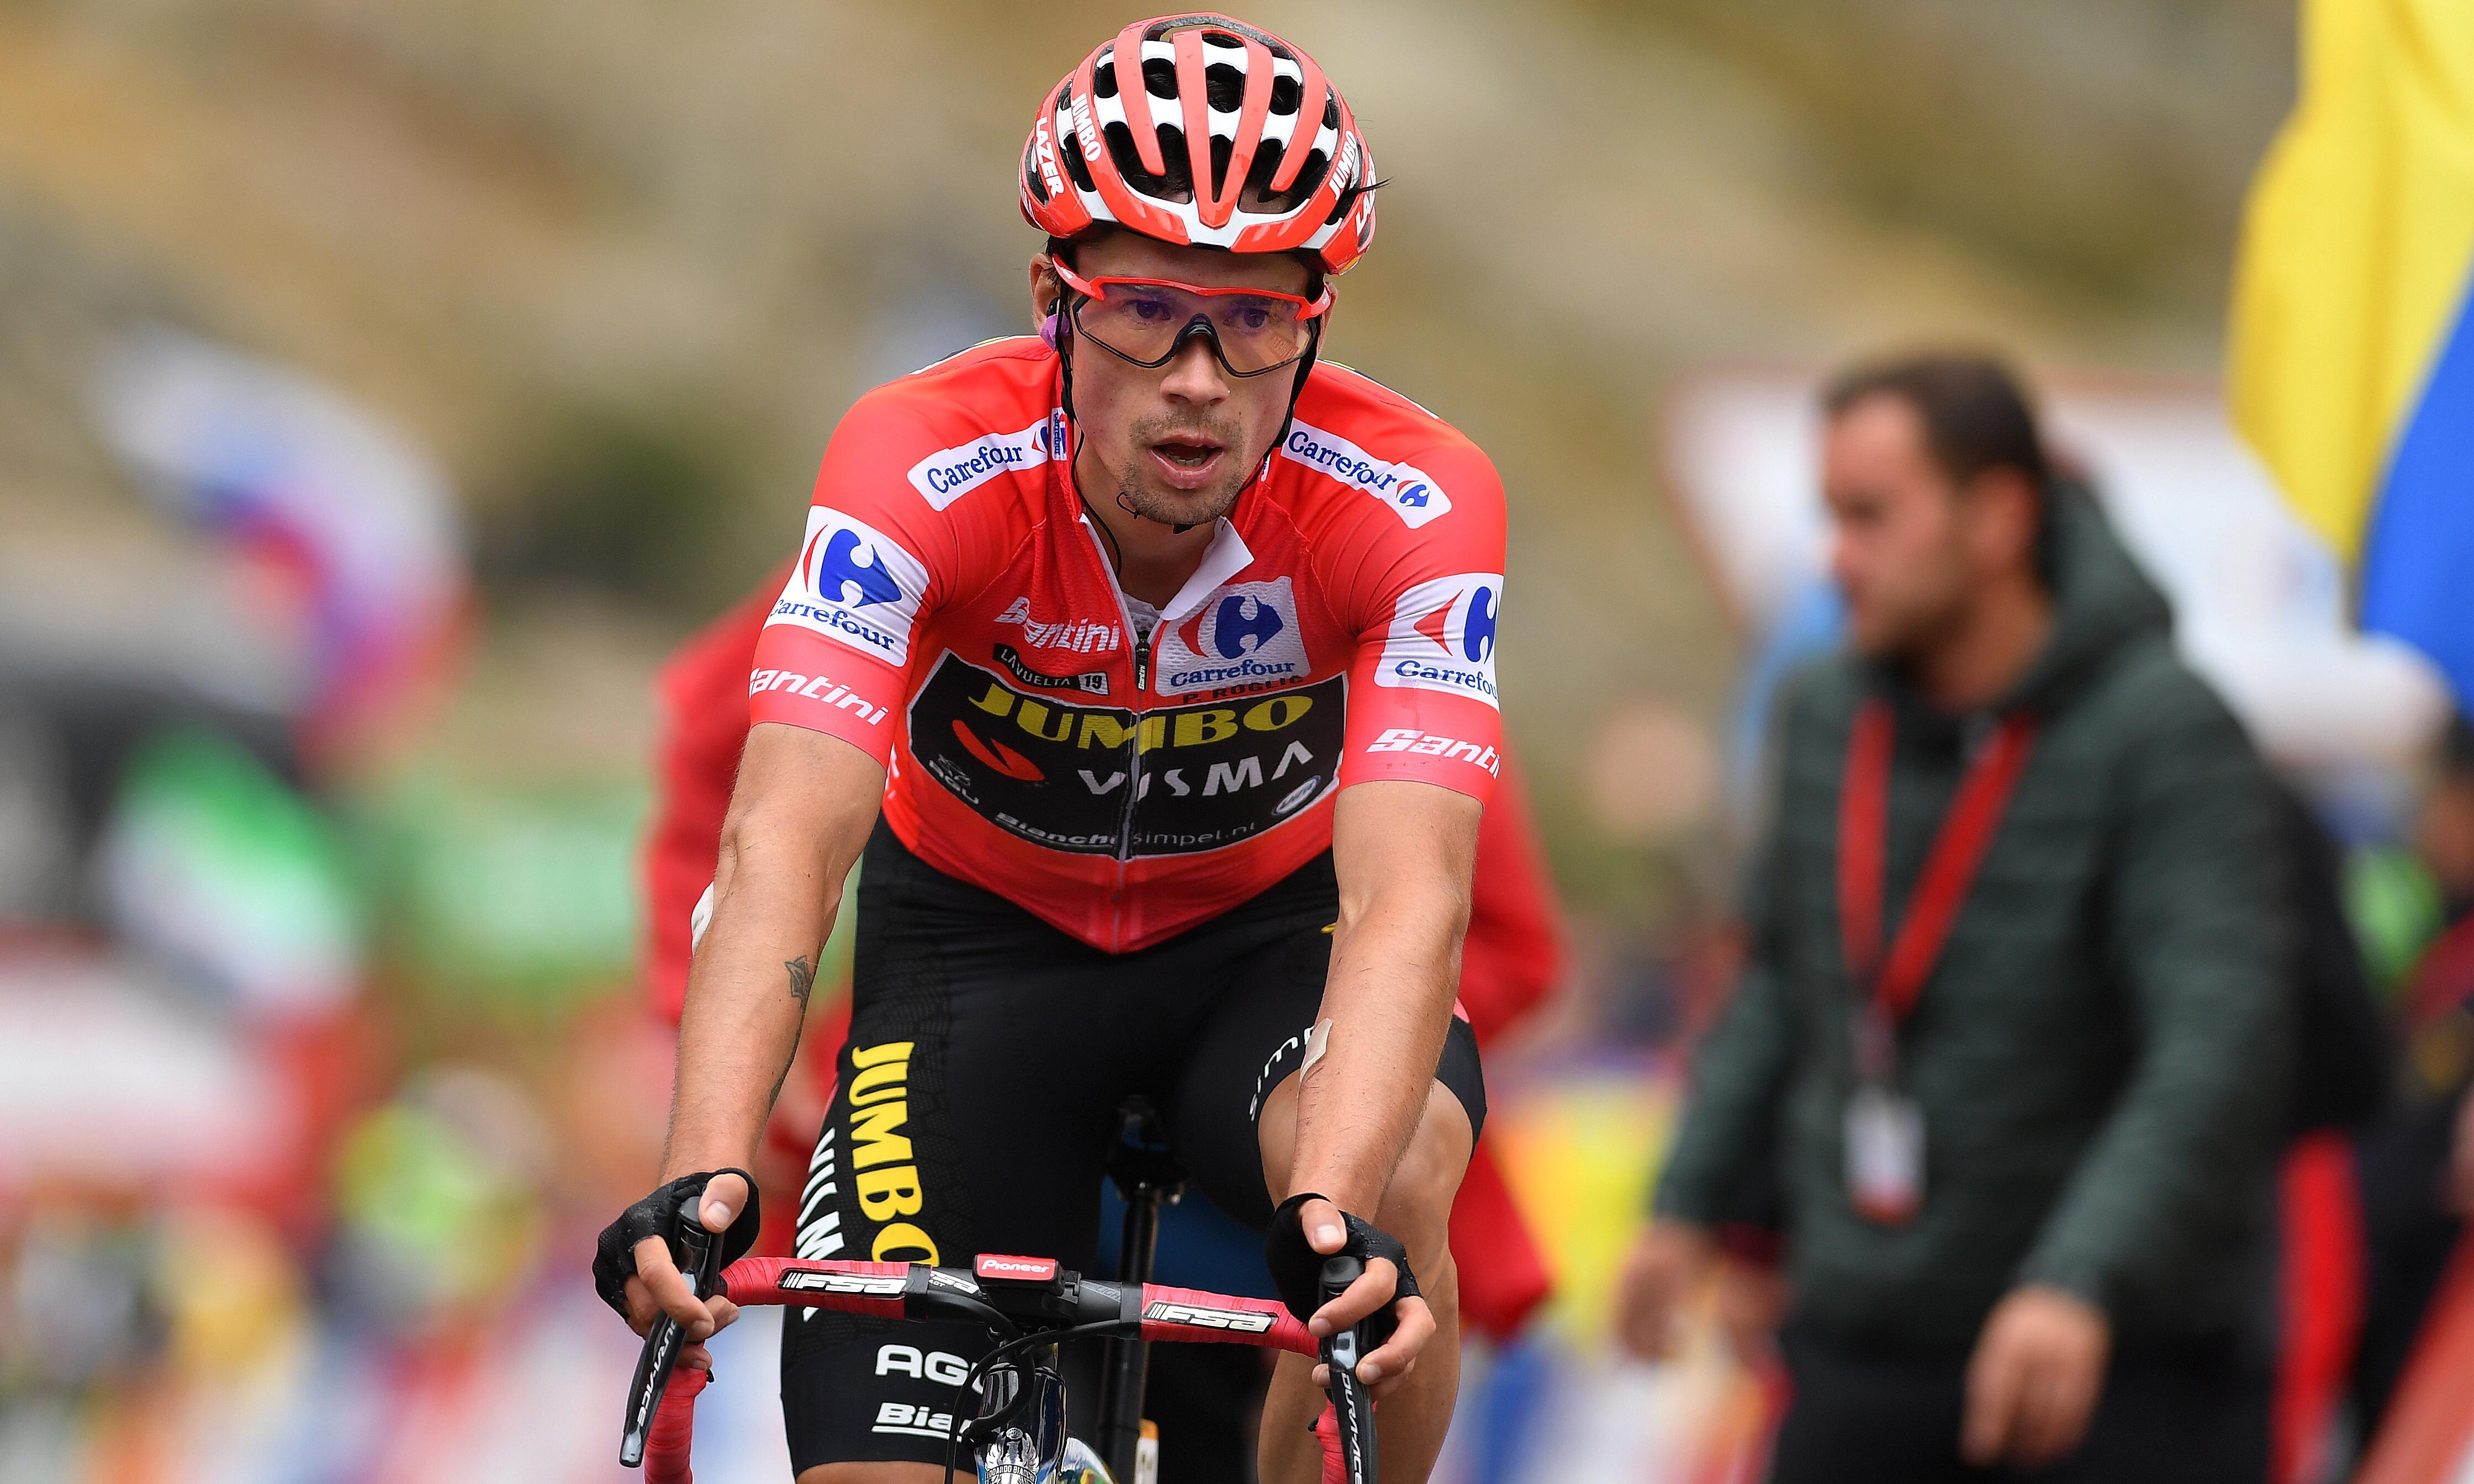 Vuelta a España: Primoz Roglic set to triumph after retaining red jersey